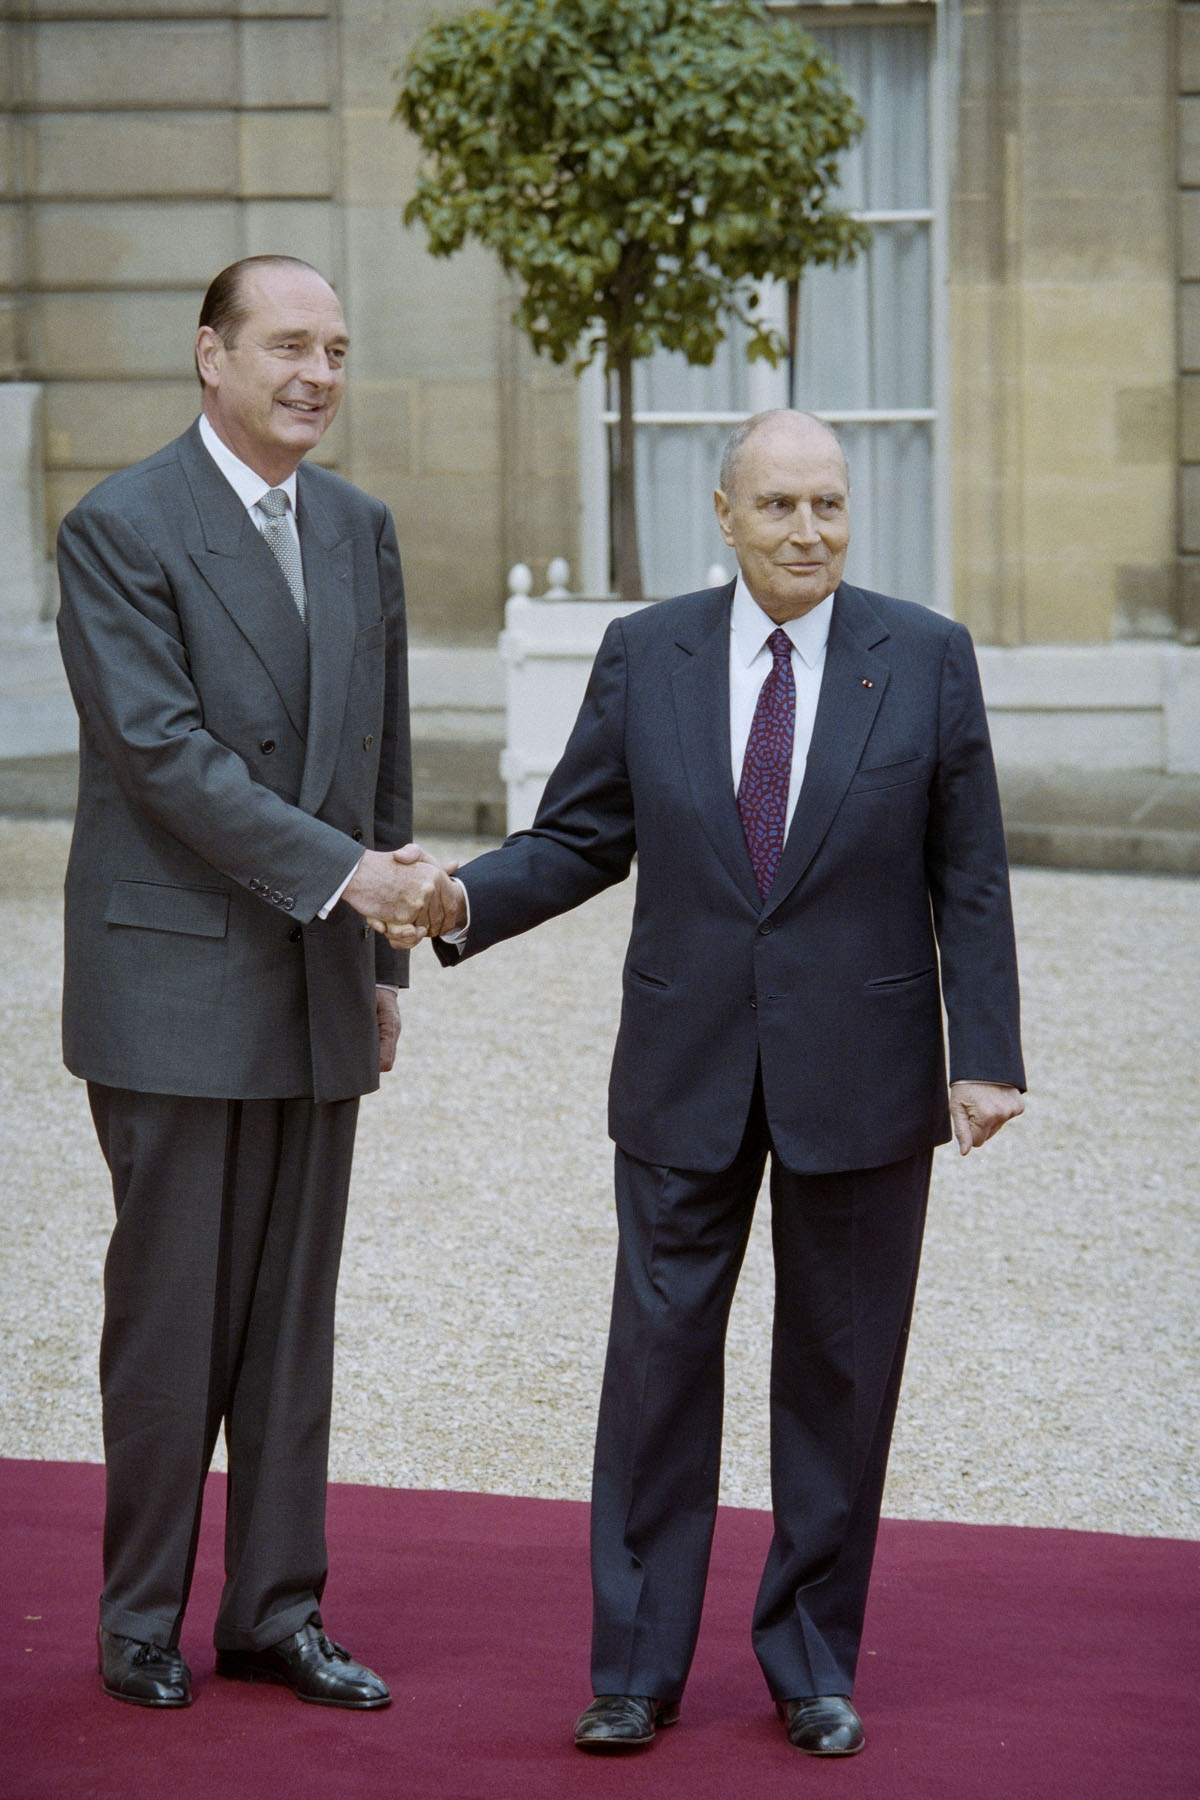 French outgoing President Francois Mitterrand (R) shakes hands with his successor Jacques Chirac during the formal handover of power ceremony on May 17, 1995 at the Elysee Palace in Paris.